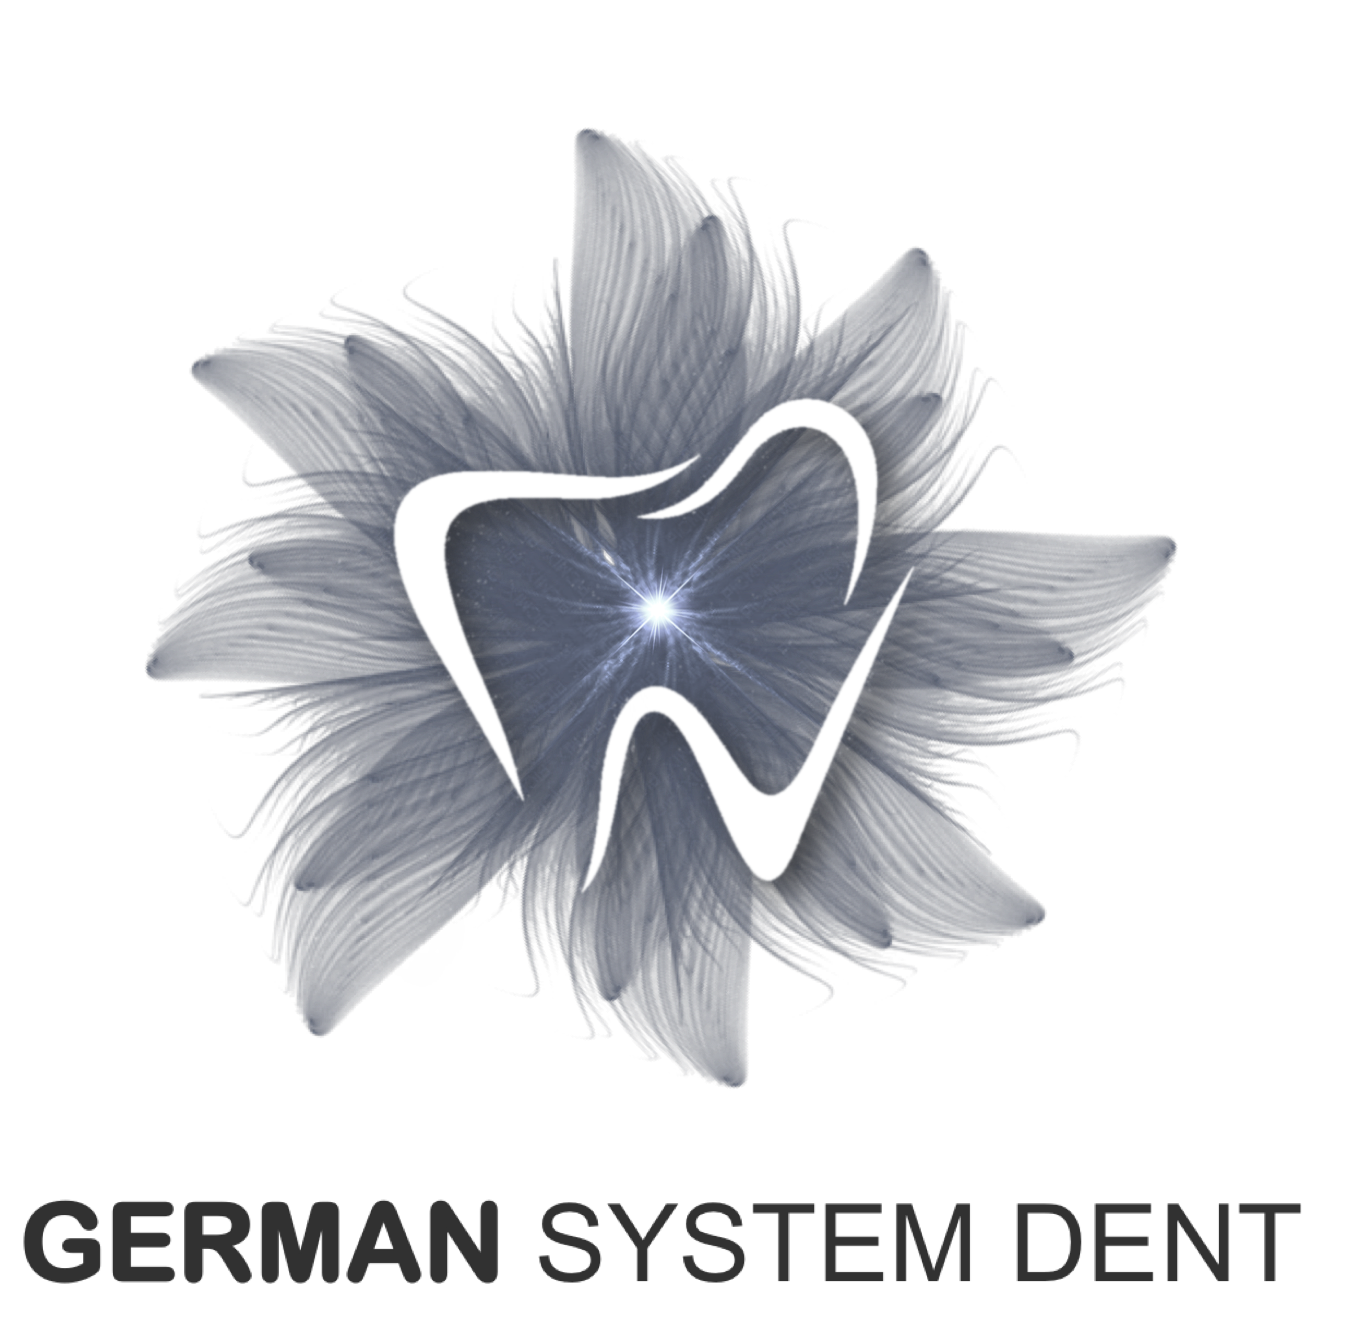 cropped-german-system-dent-logo-gsd.png